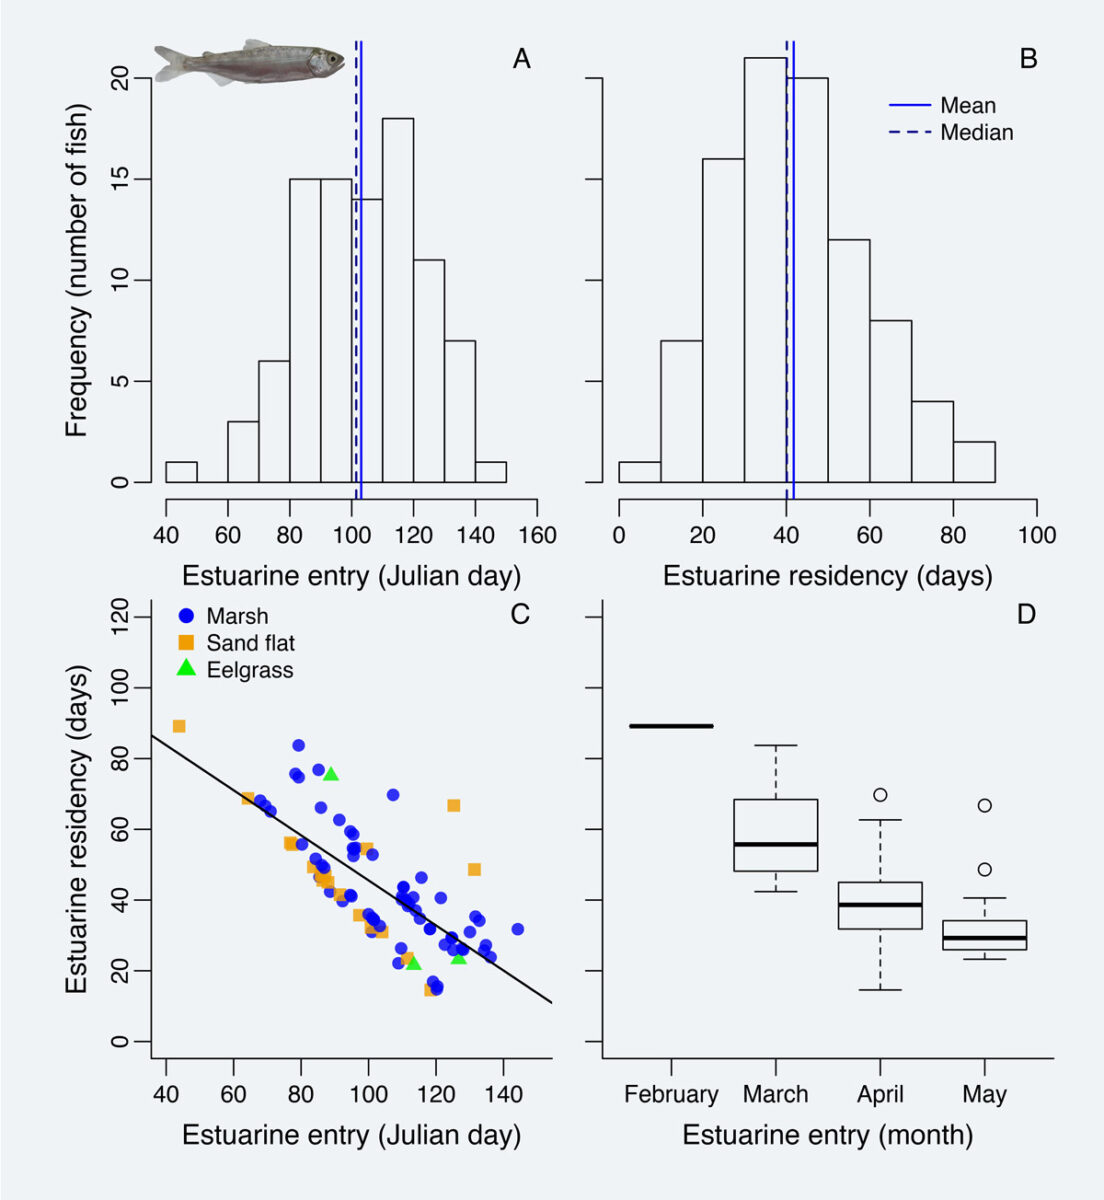 Figure 4 from Lia Chalifour's paper showing estuary frequencies and locations of Chinook salmon.